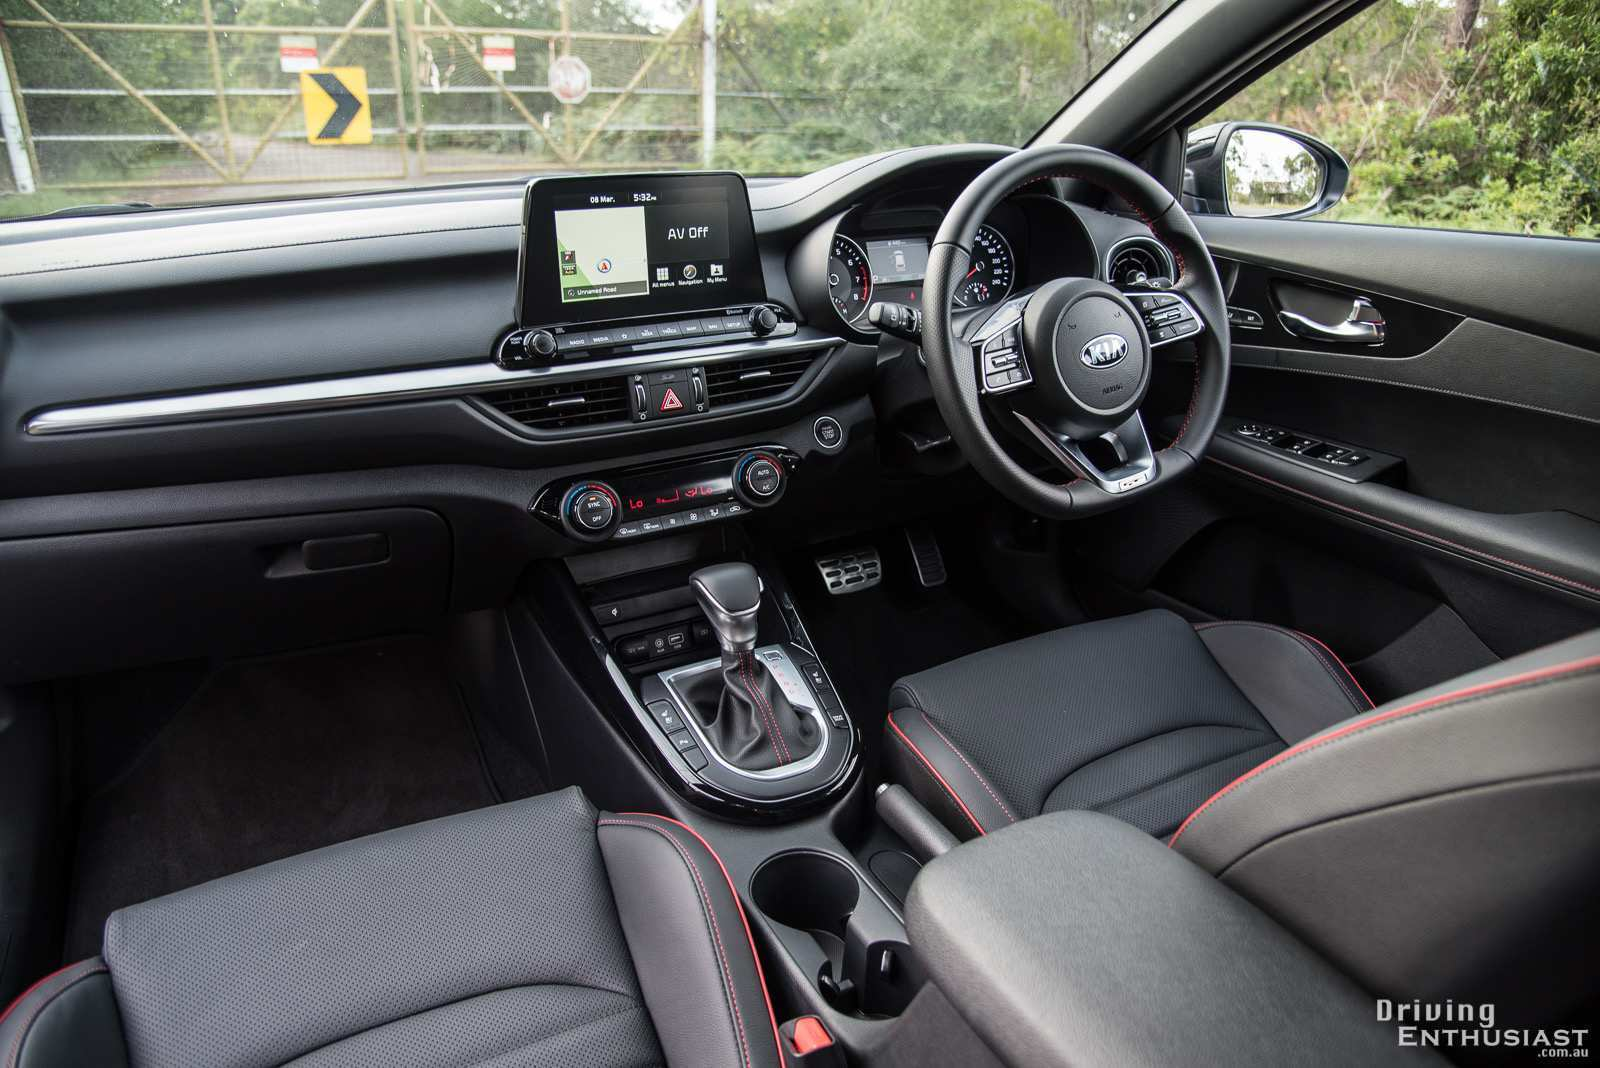 25 A Kia Cerato 2019 Interior Review